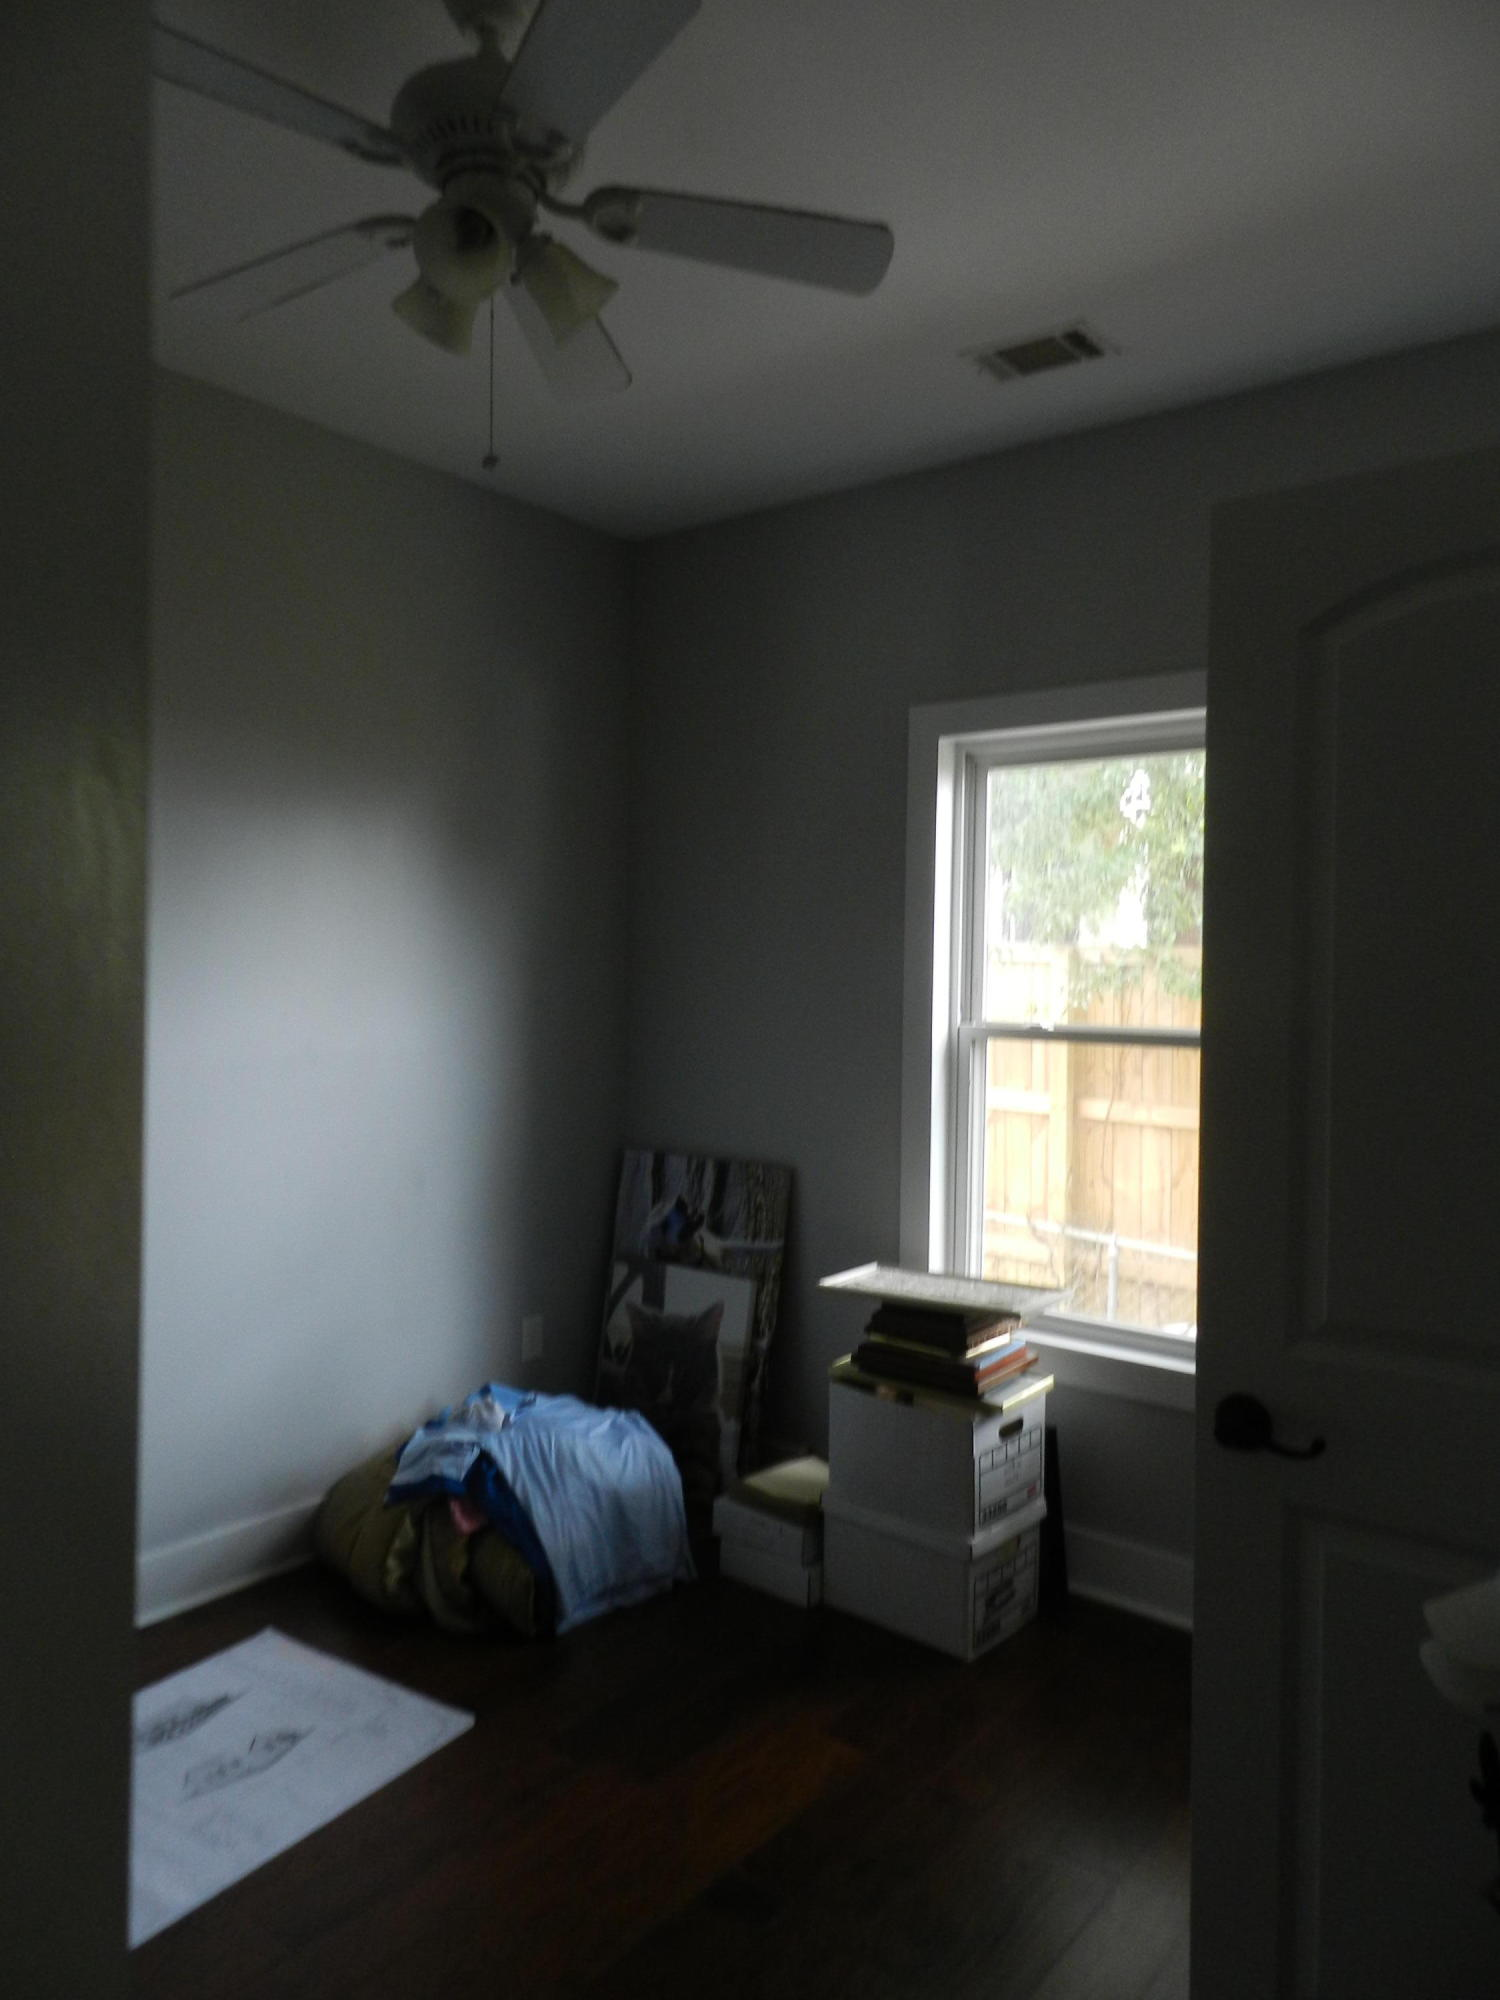 Old Mt Pleasant Homes For Sale - 710 Simmons Street, Mount Pleasant, SC - 23